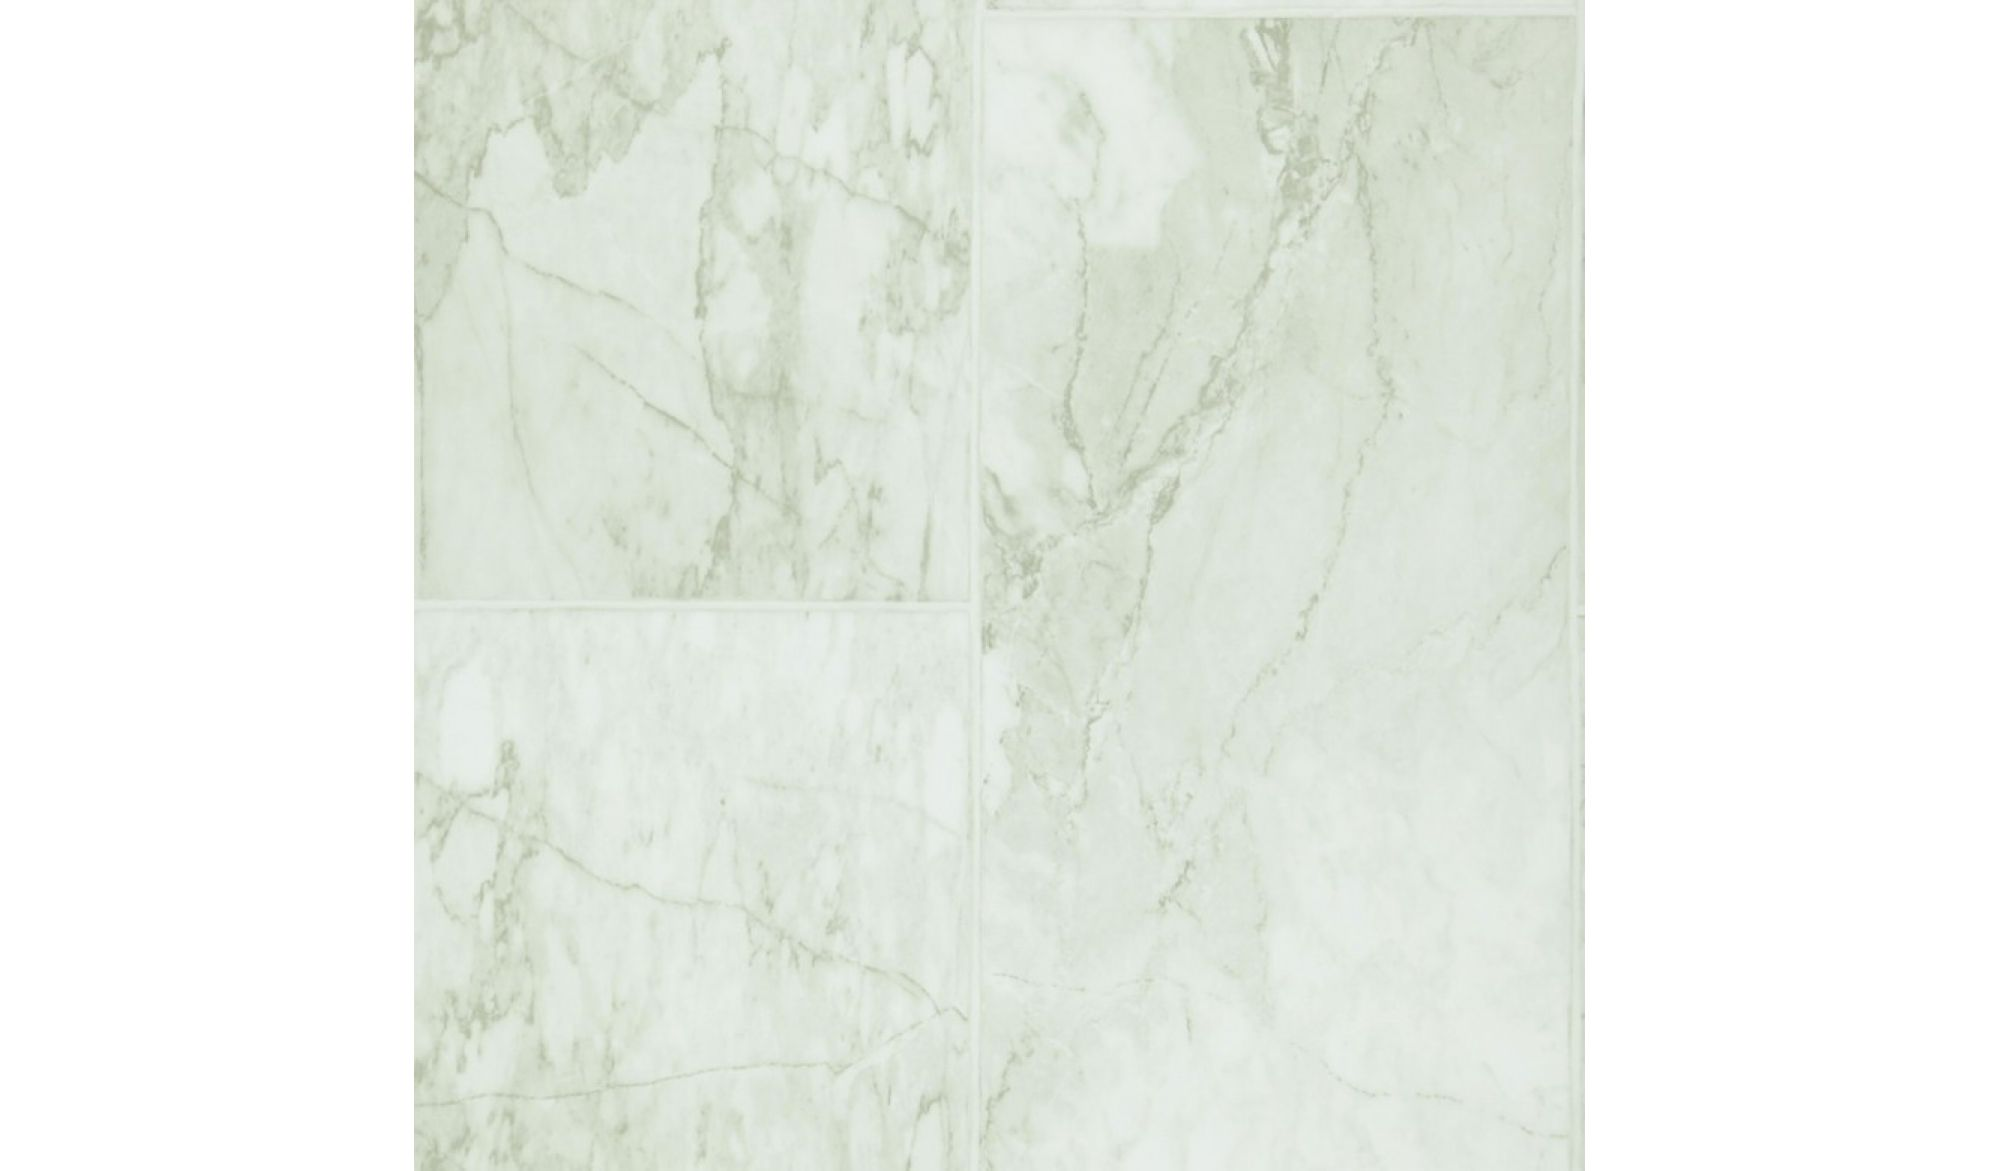 TAPETA CARRARA MARBLE Pelican 67 - Wallpaper alt_tapety_kolor_pelican 67 Graphics Melange - Colour